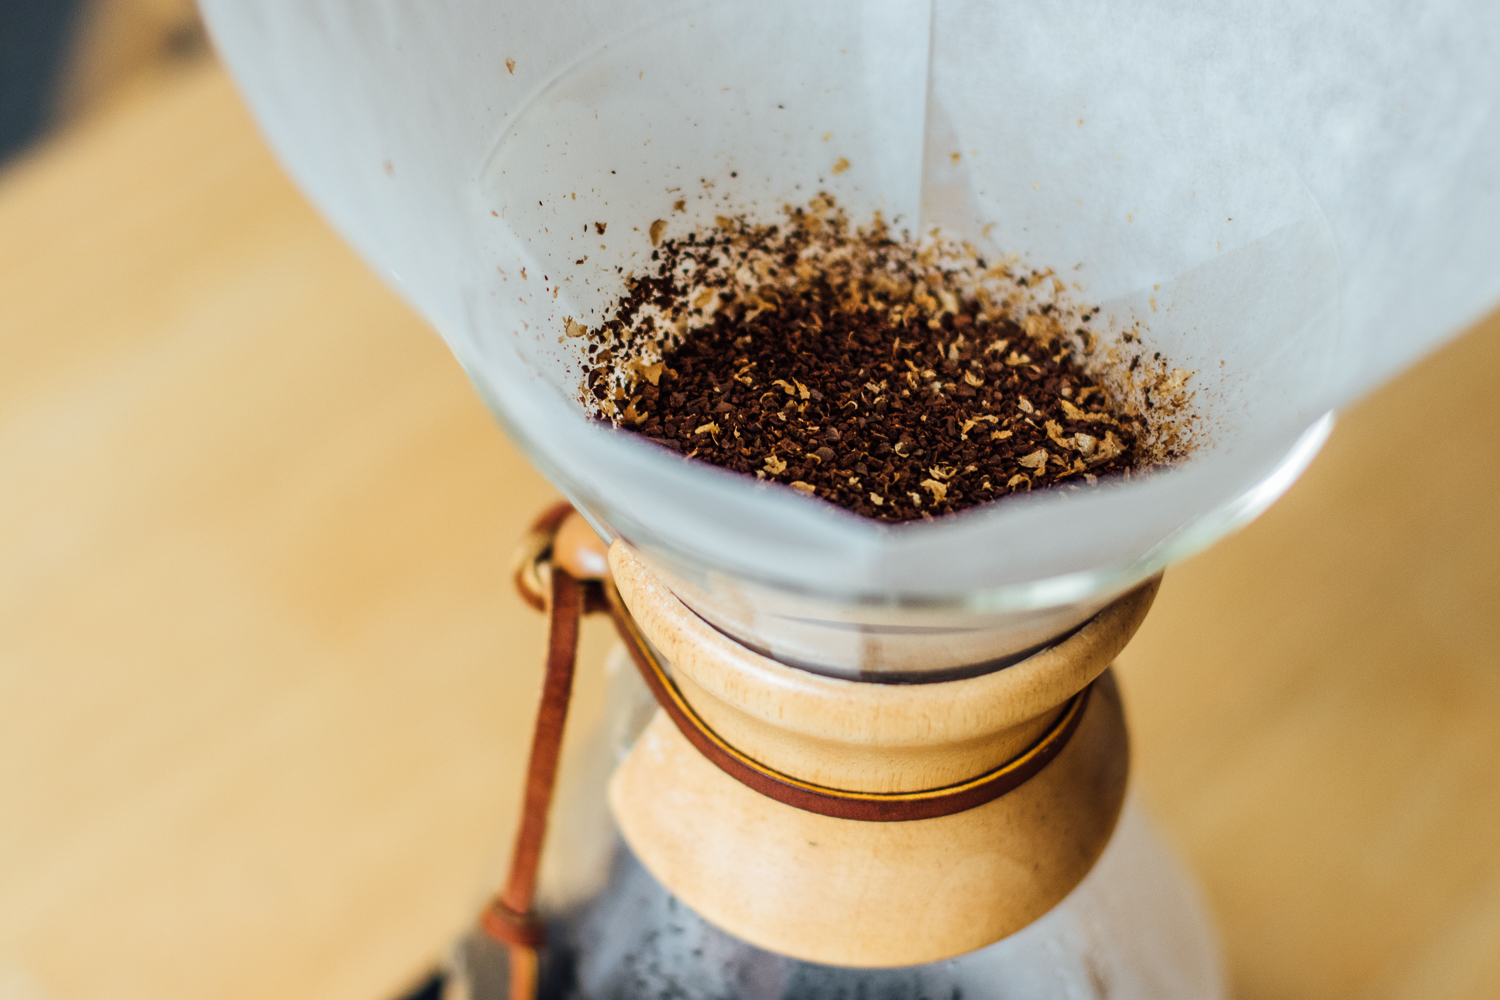 Close up of a wooden neck Chemex with dry grounds inside the wet filter.